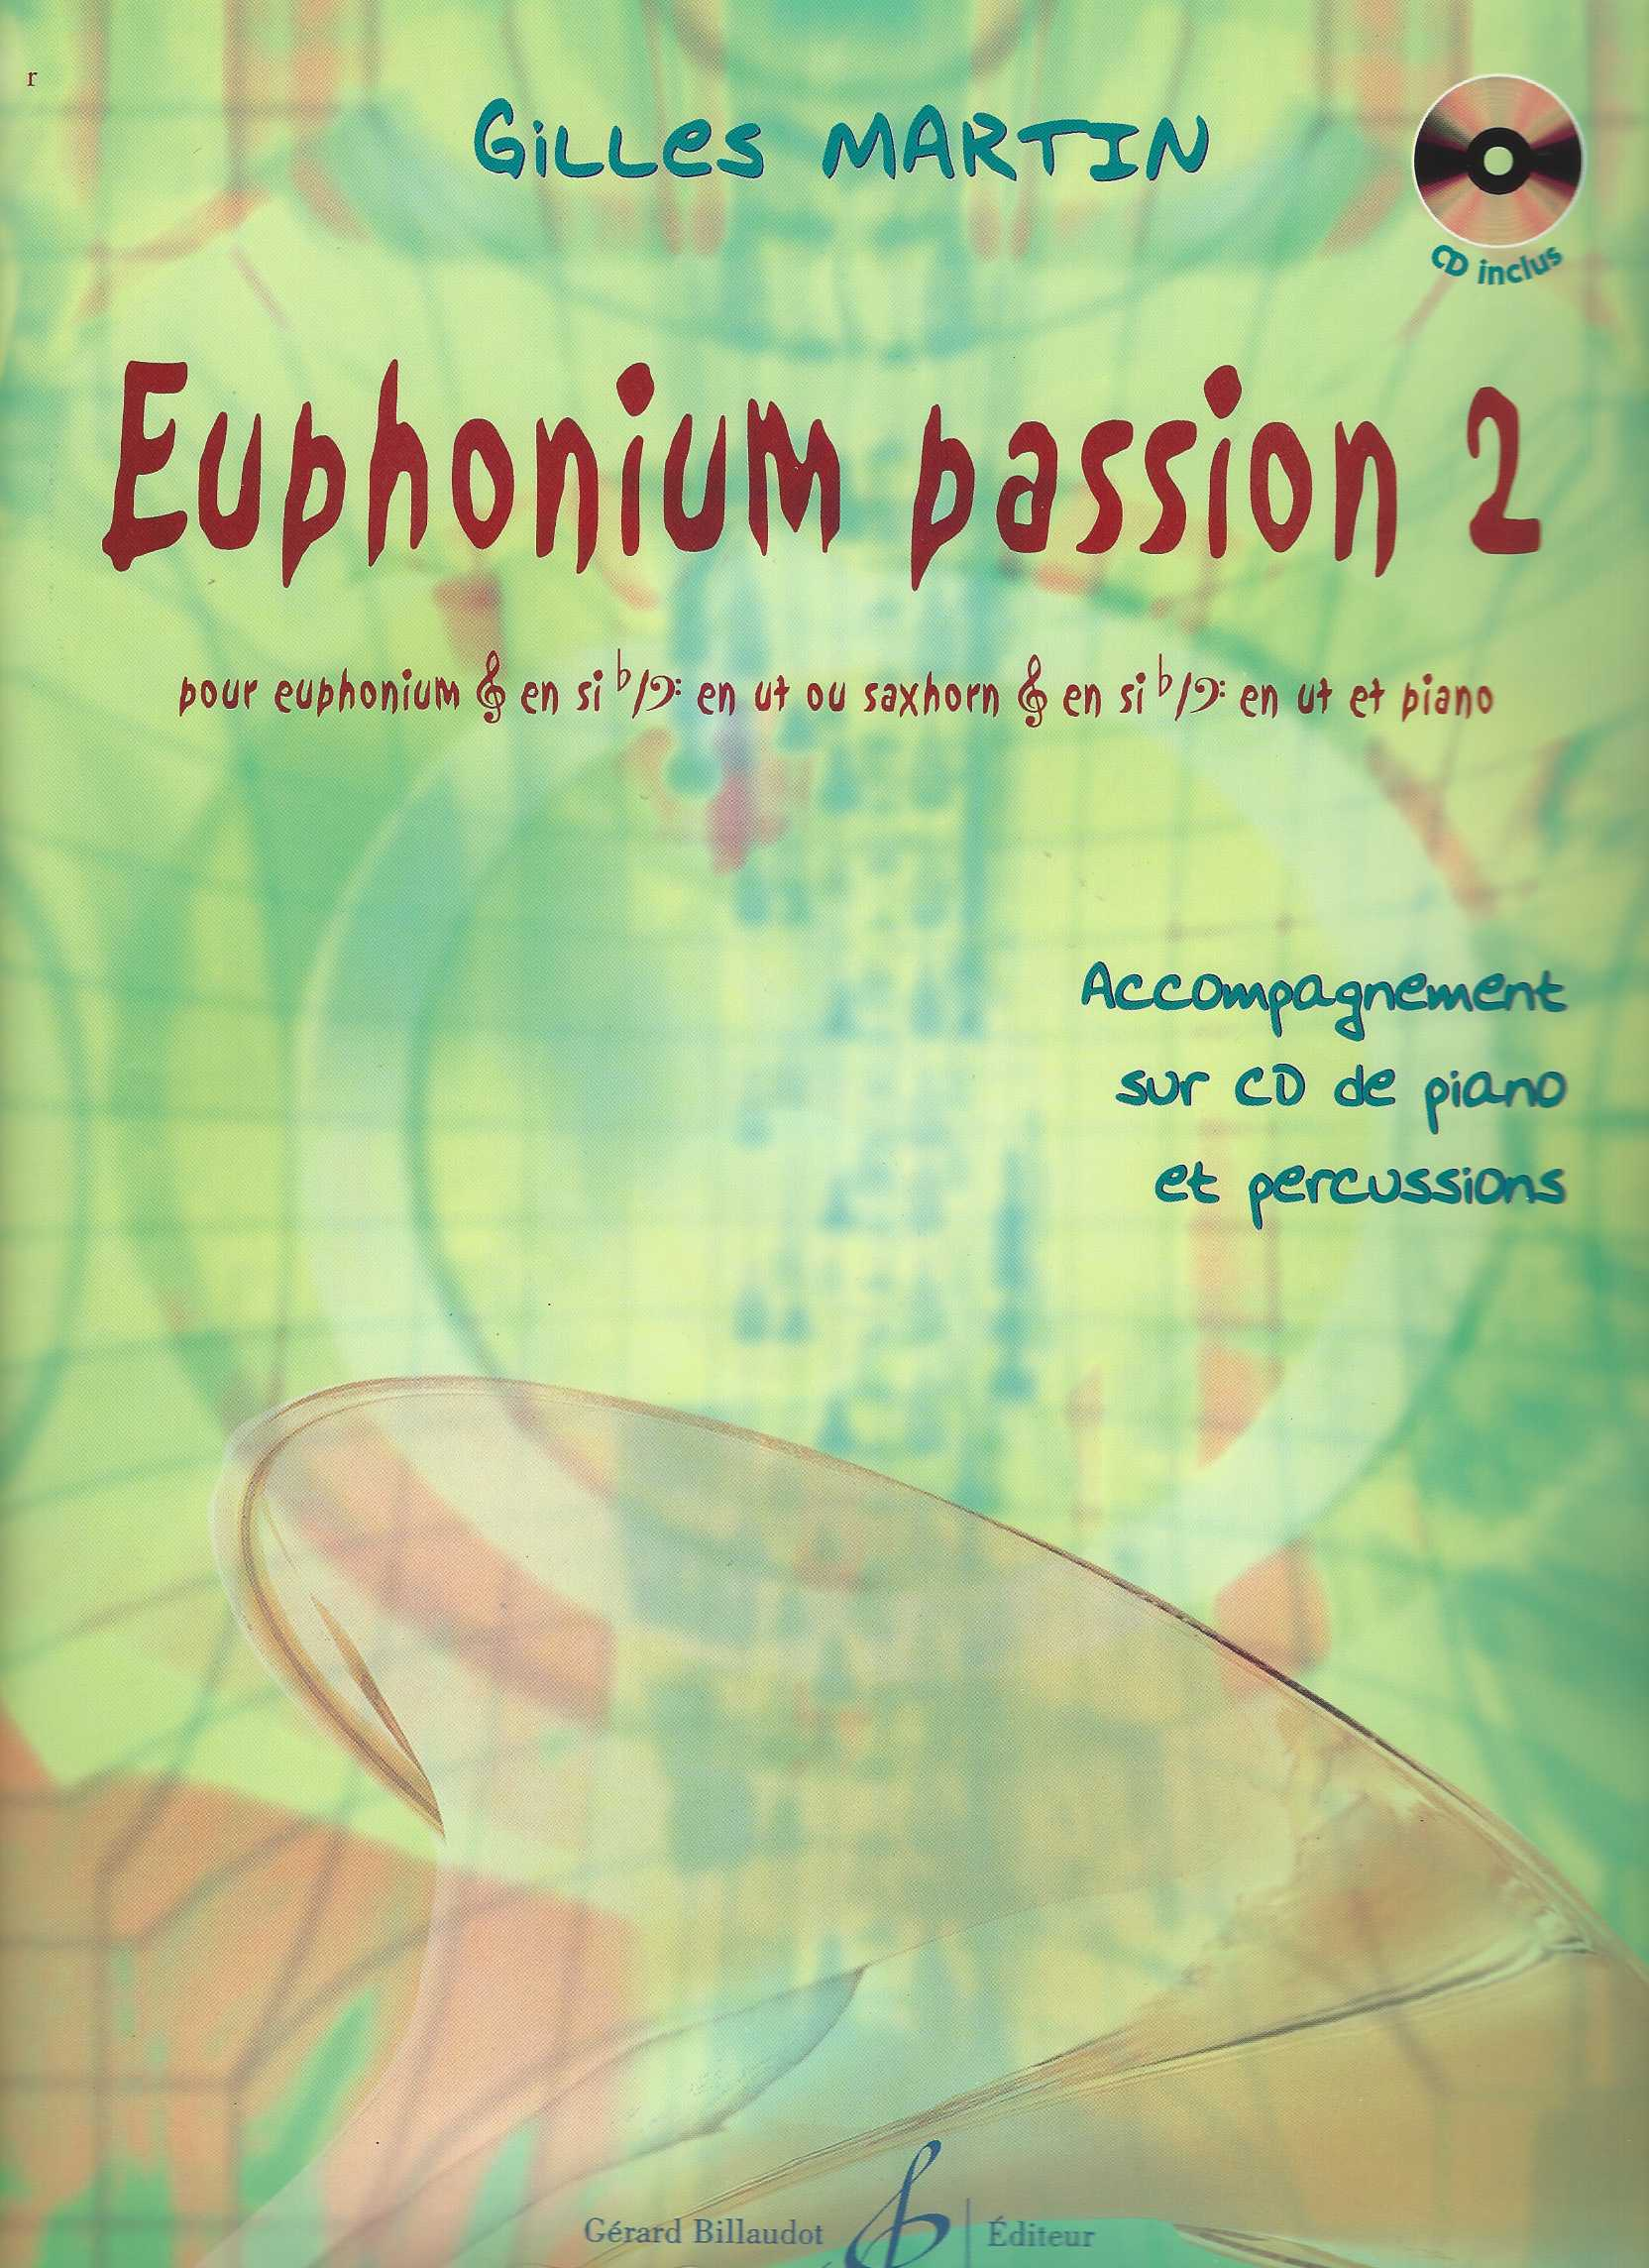 Euphonium Passion 1 - Gilles Martin - Book with CD accompaniment